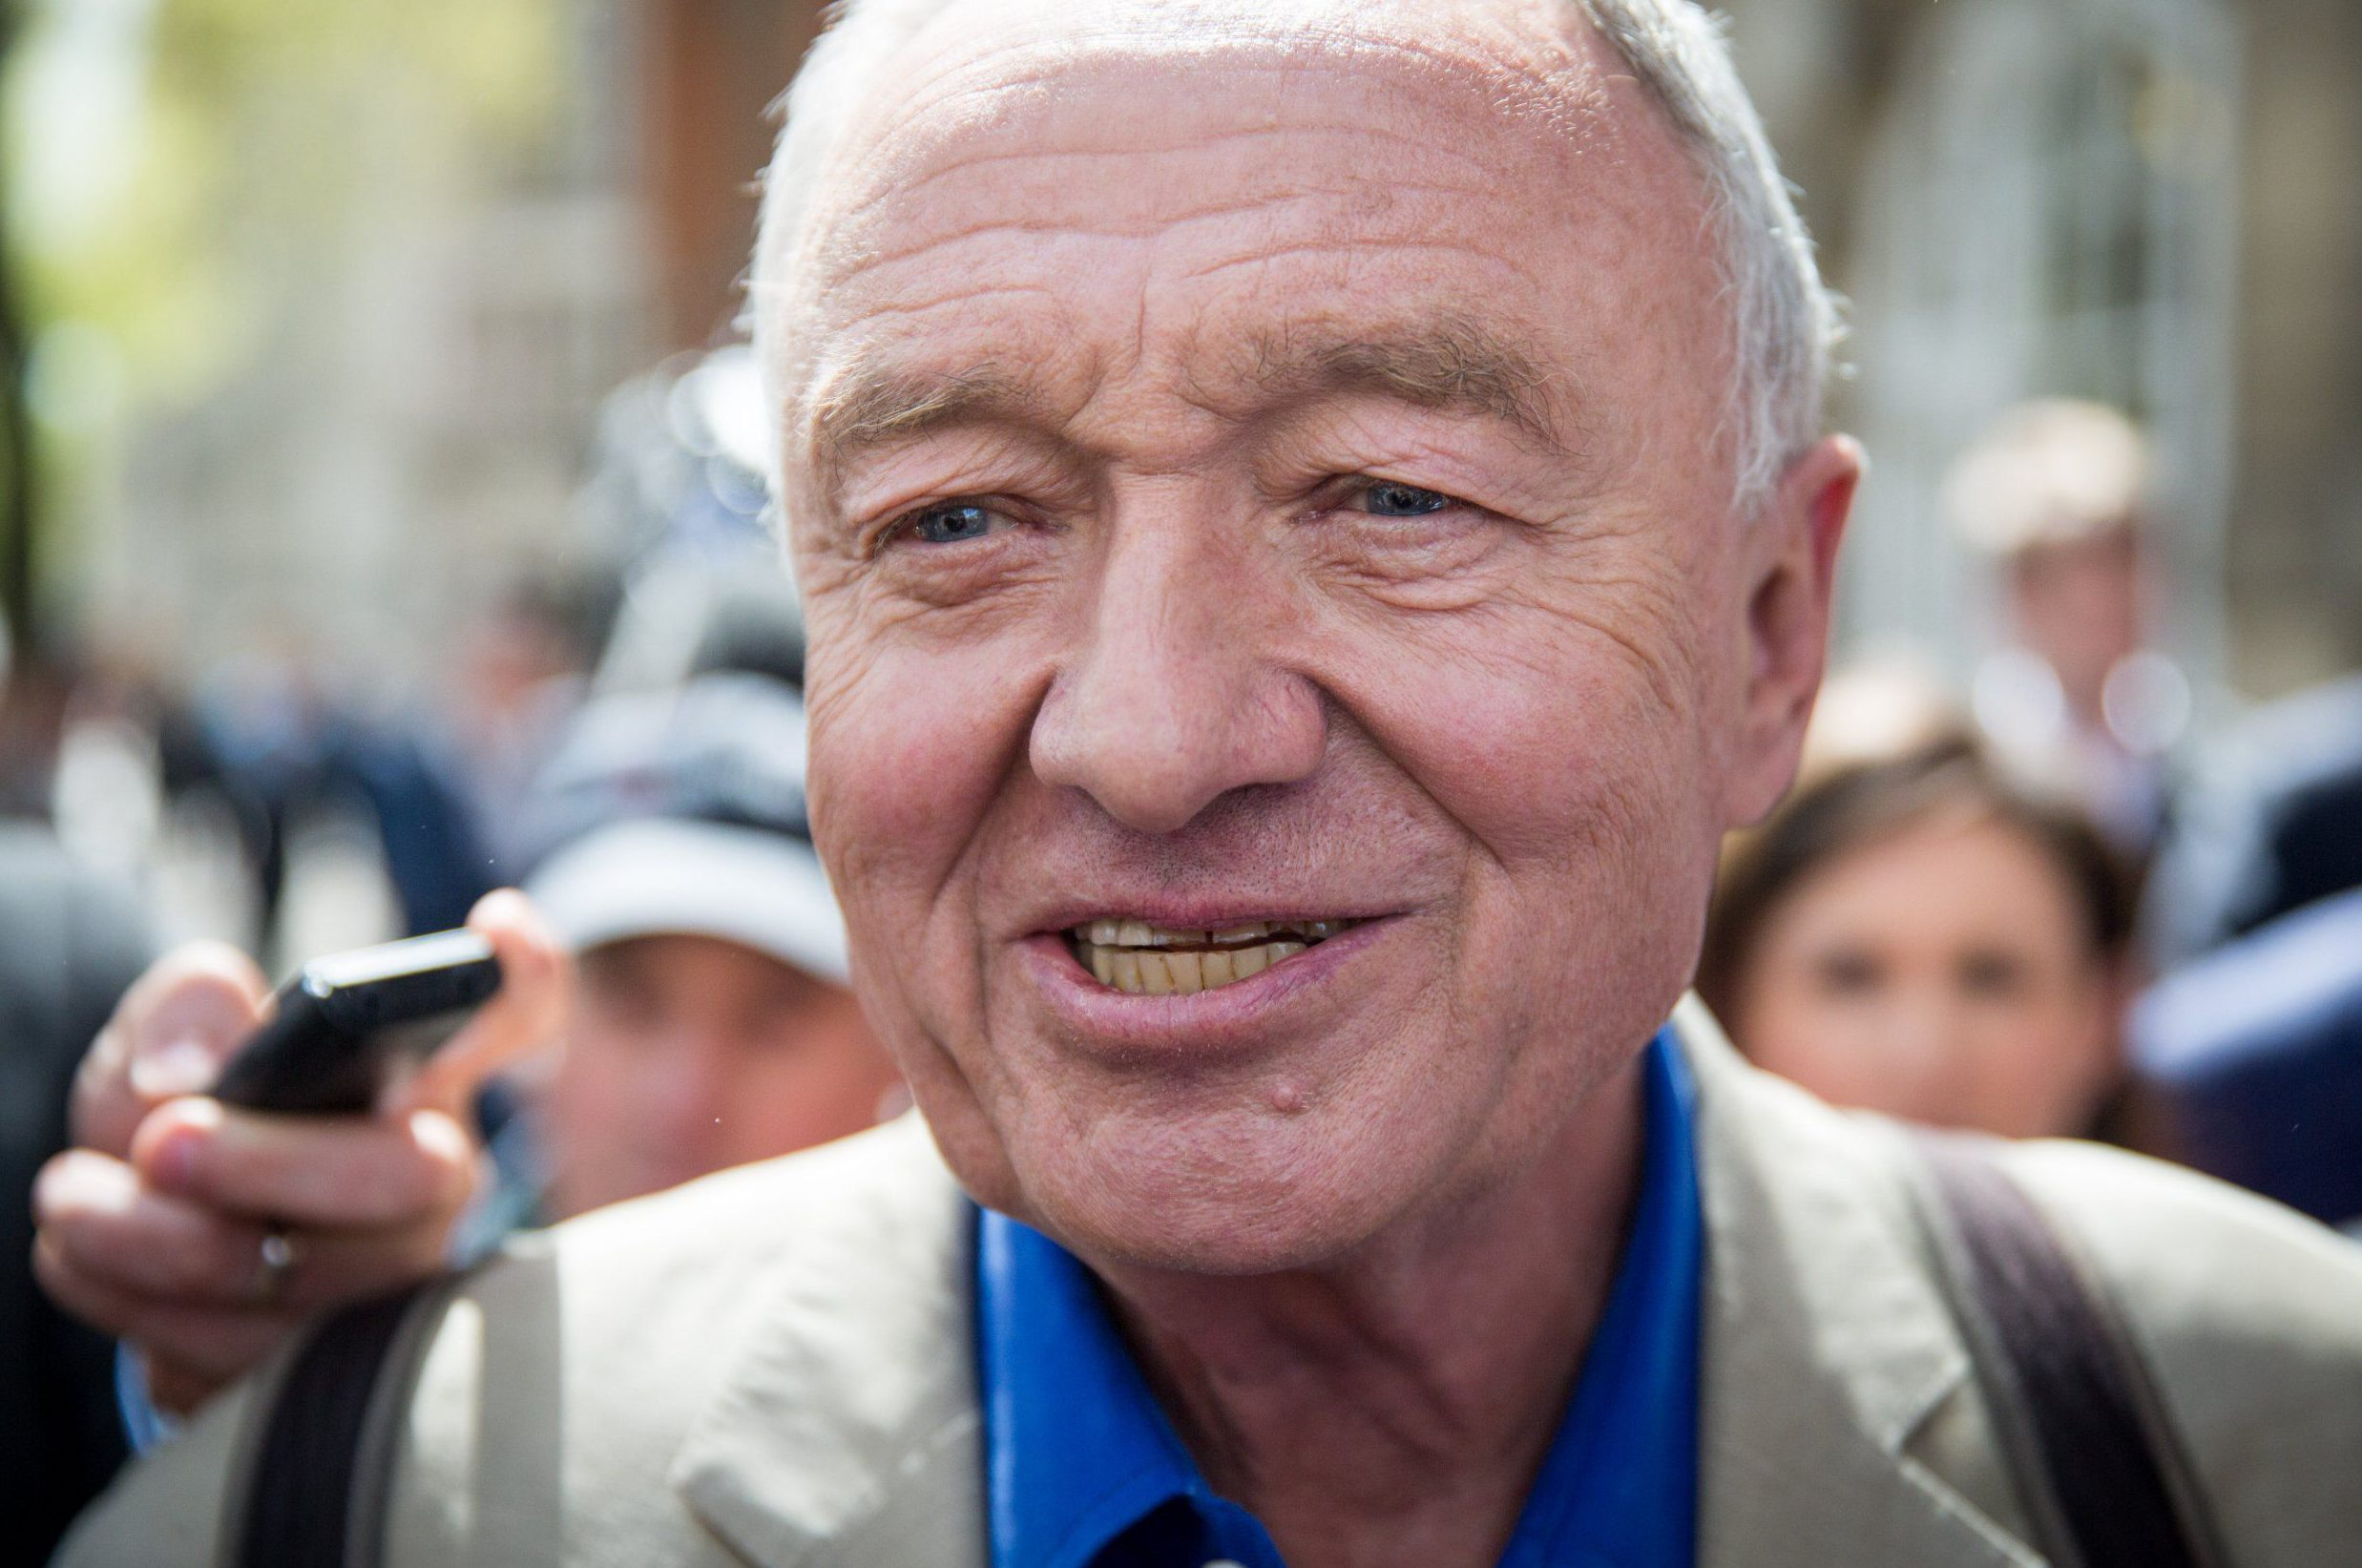 Ken Livingstone said he can't be anti-Semitic 'because he's dated Jewish women'